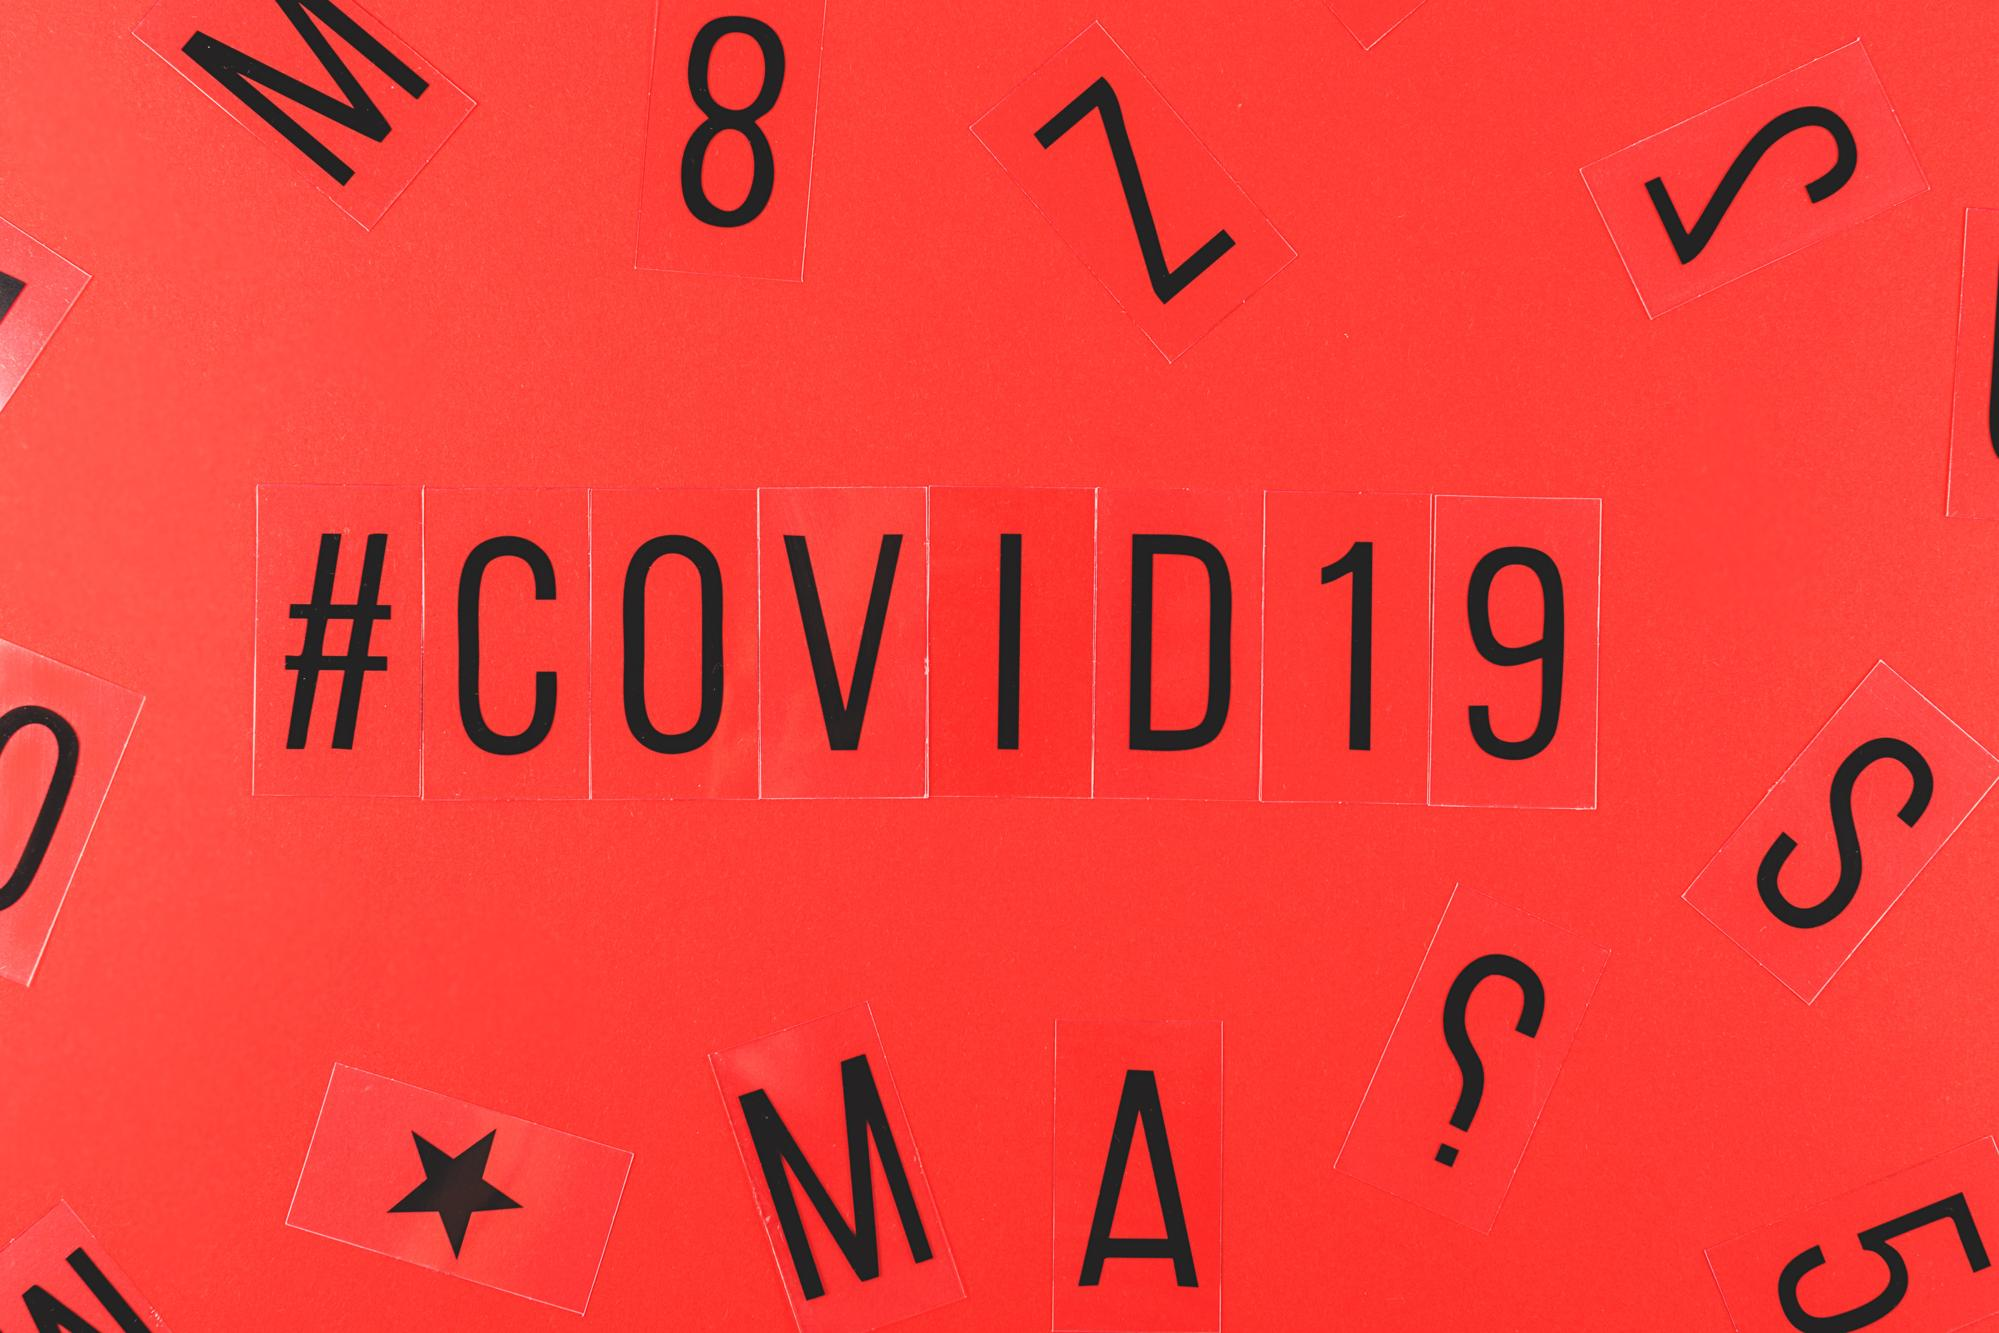 Word covid-19 and hashtag on red background